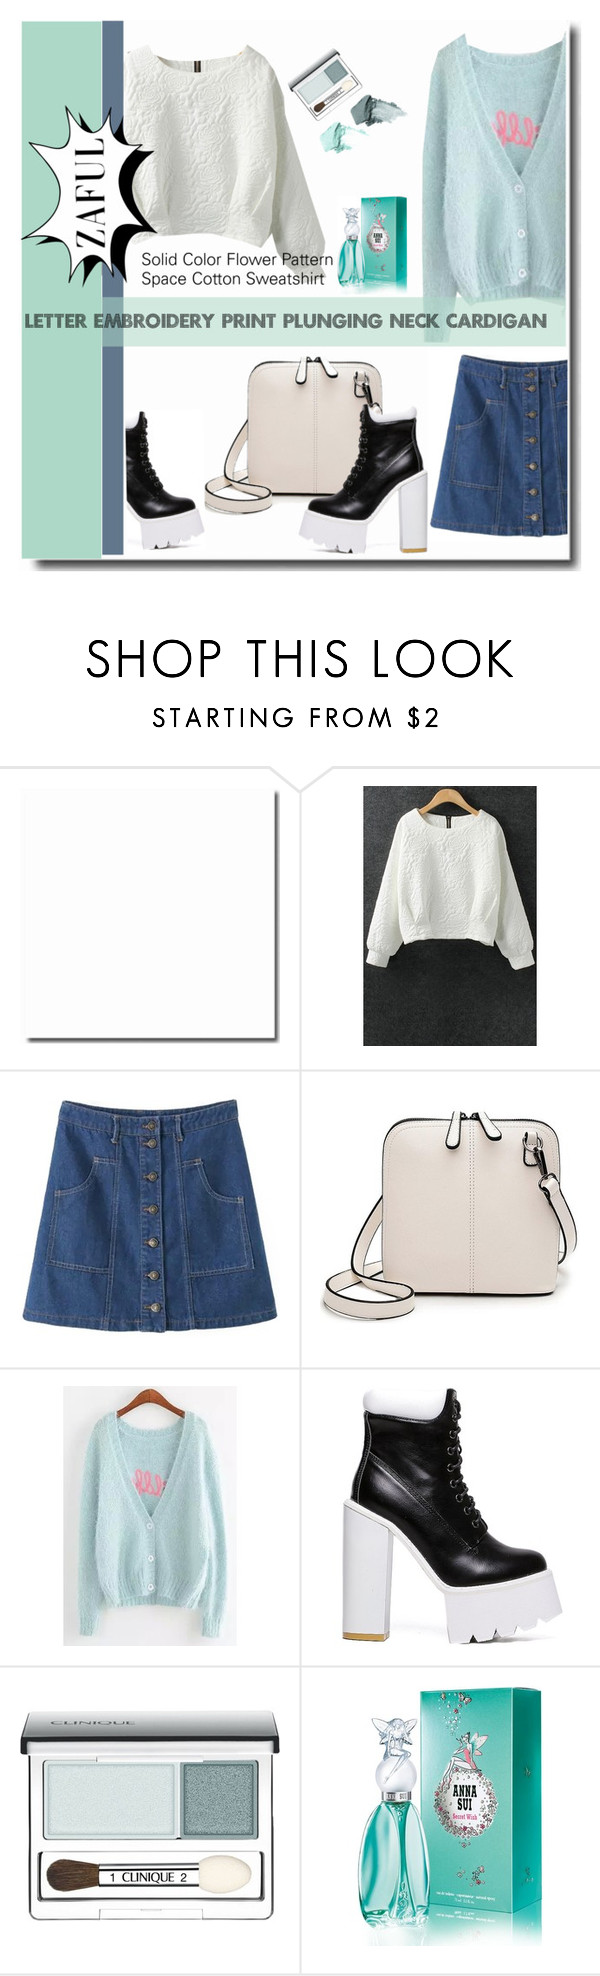 """""""14. by selmir liked on Polyvore"""